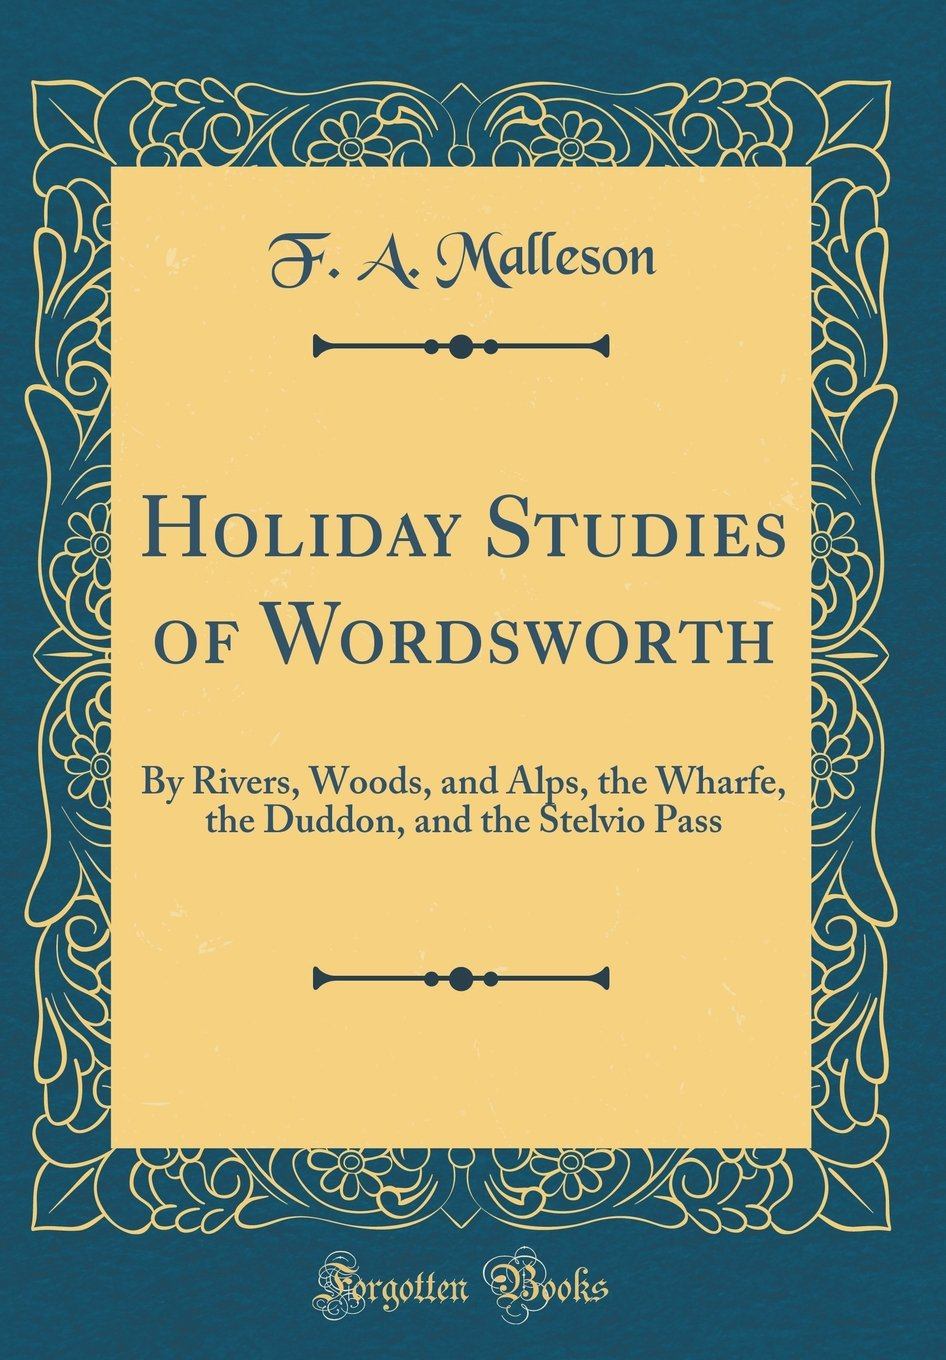 Holiday Studies of Wordsworth: By Rivers, Woods, and Alps, the Wharfe, the Duddon, and the Stelvio Pass (Classic Reprint) PDF